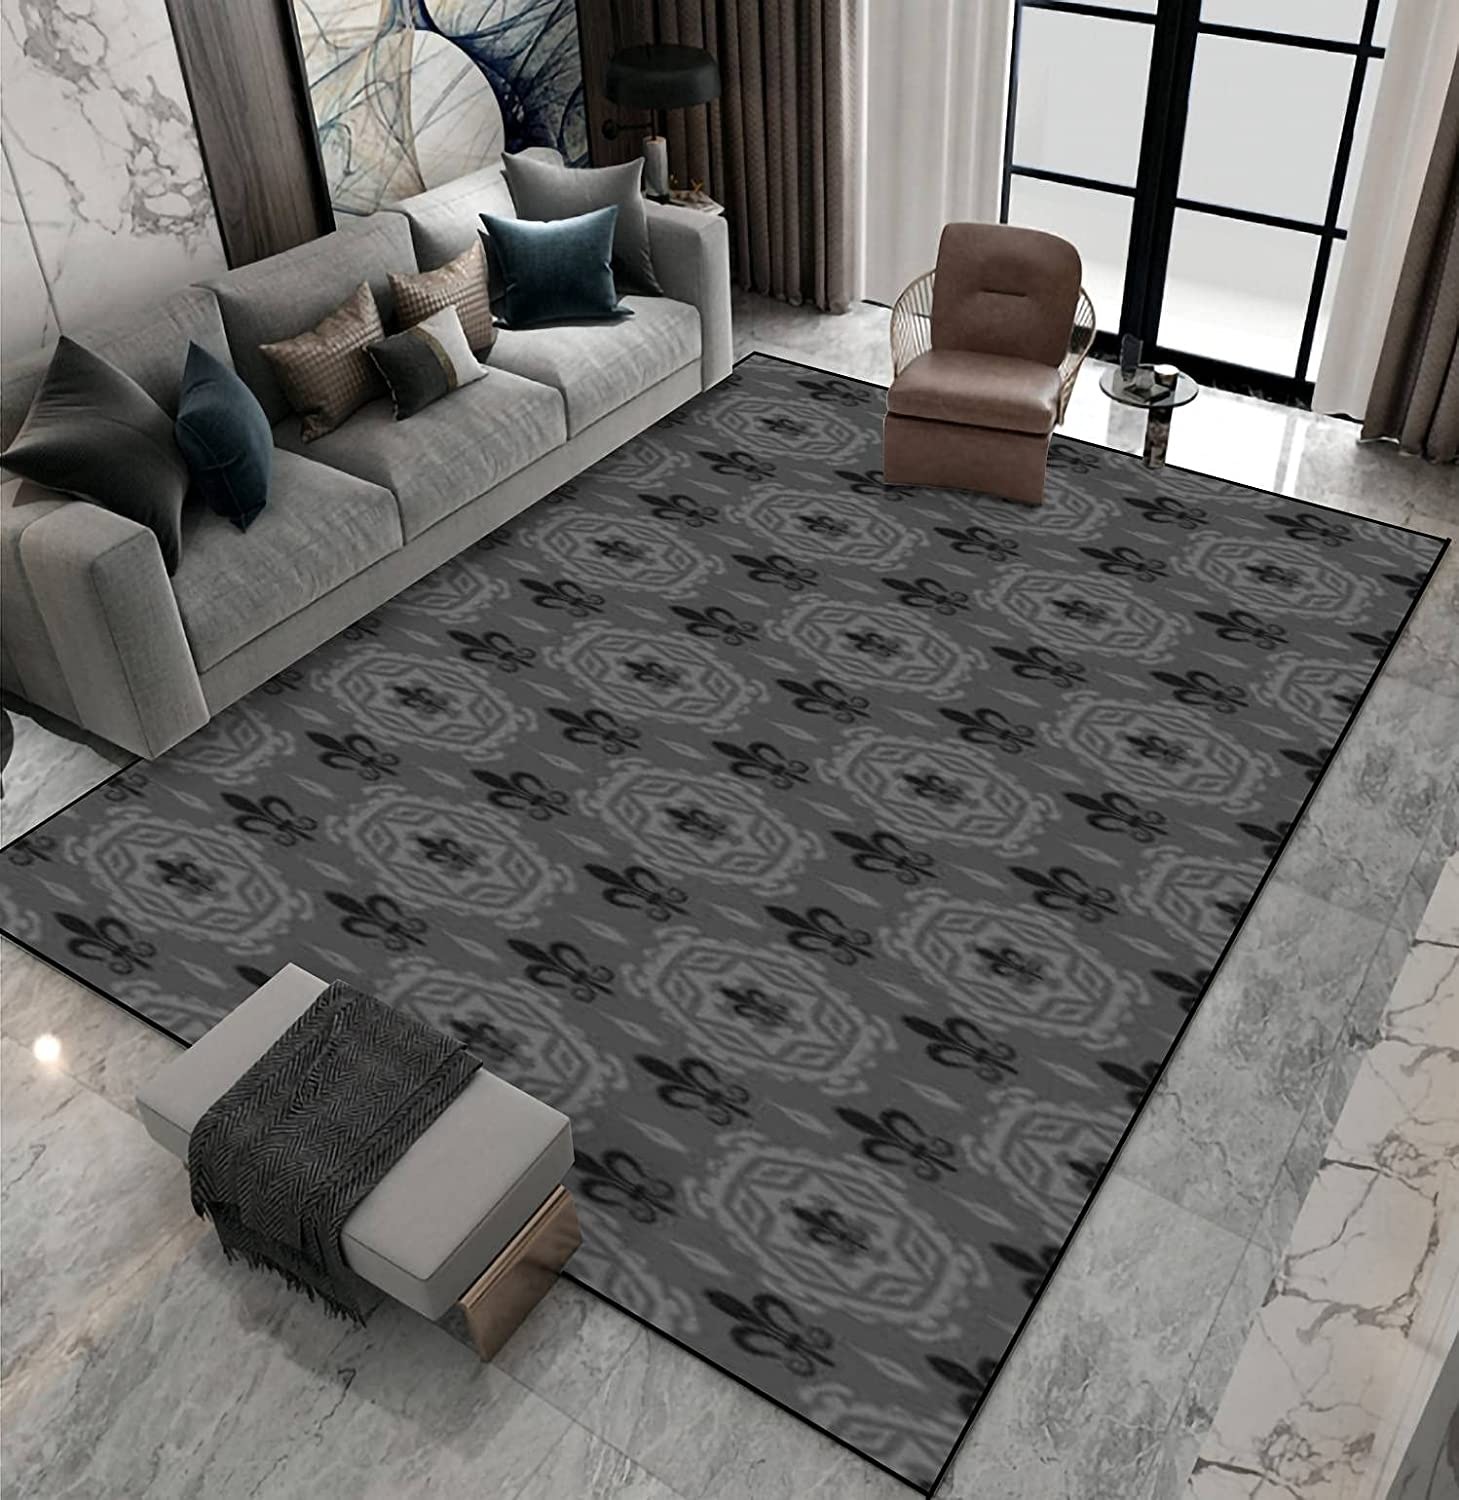 Area Rug Non-Slip Floor Cheap mail order specialty Luxury store Mat with Pattern Shad Background Vintage